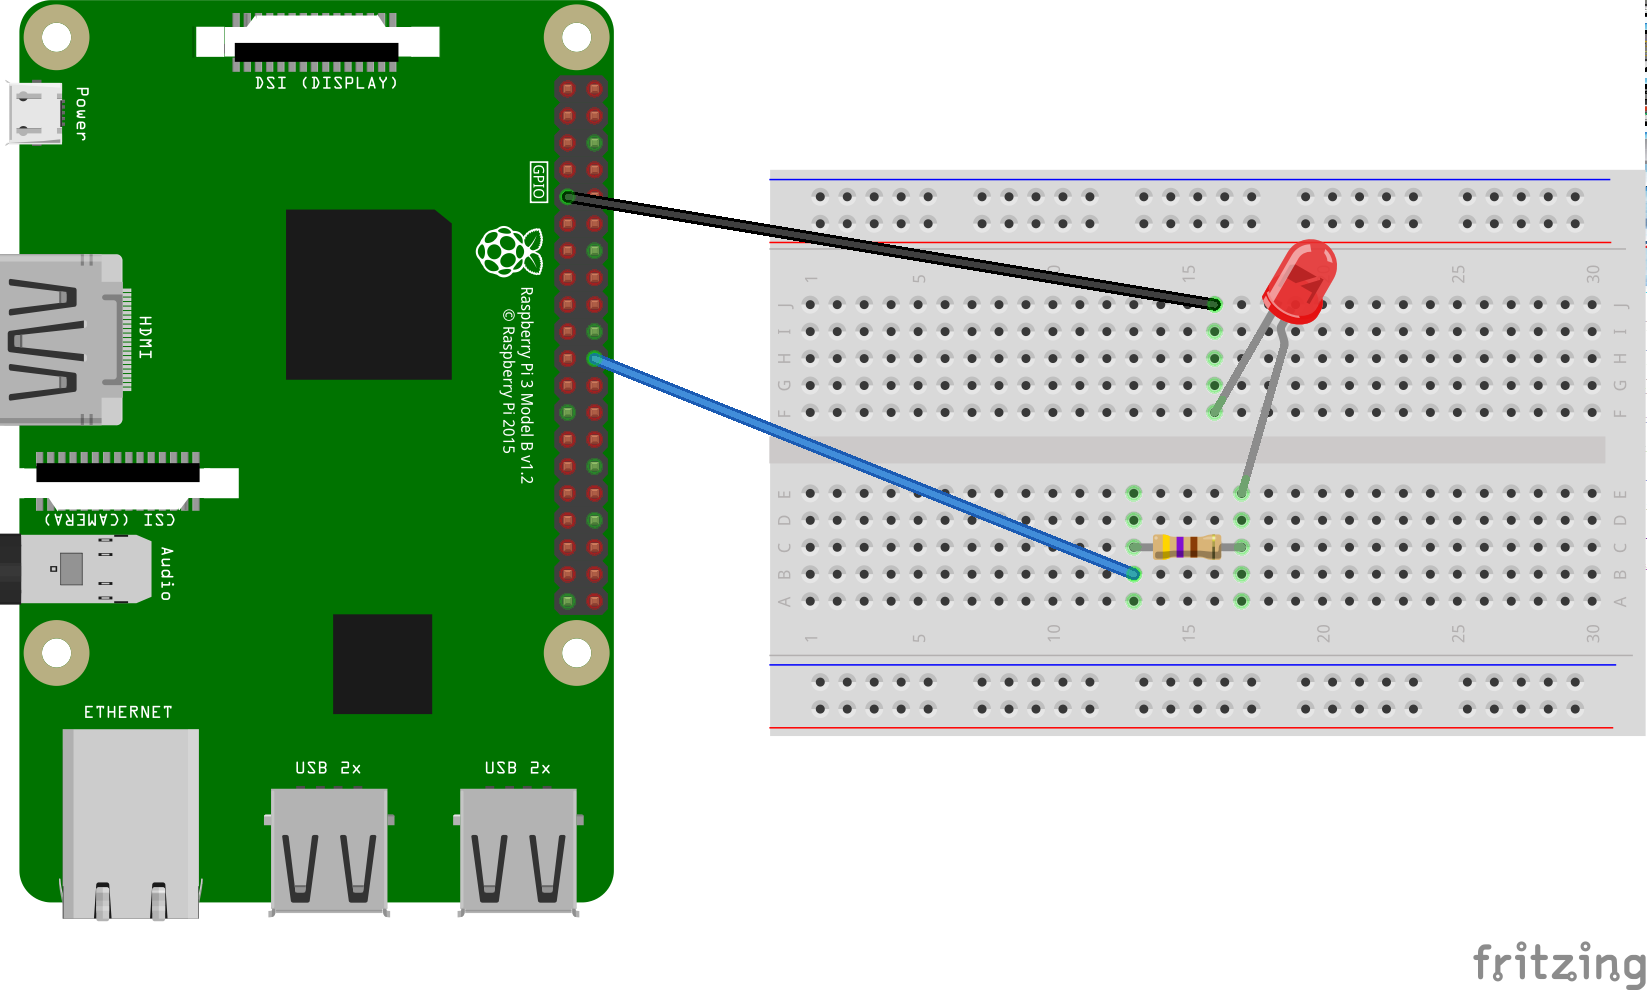 Wire an LED to the Raspberry Pi